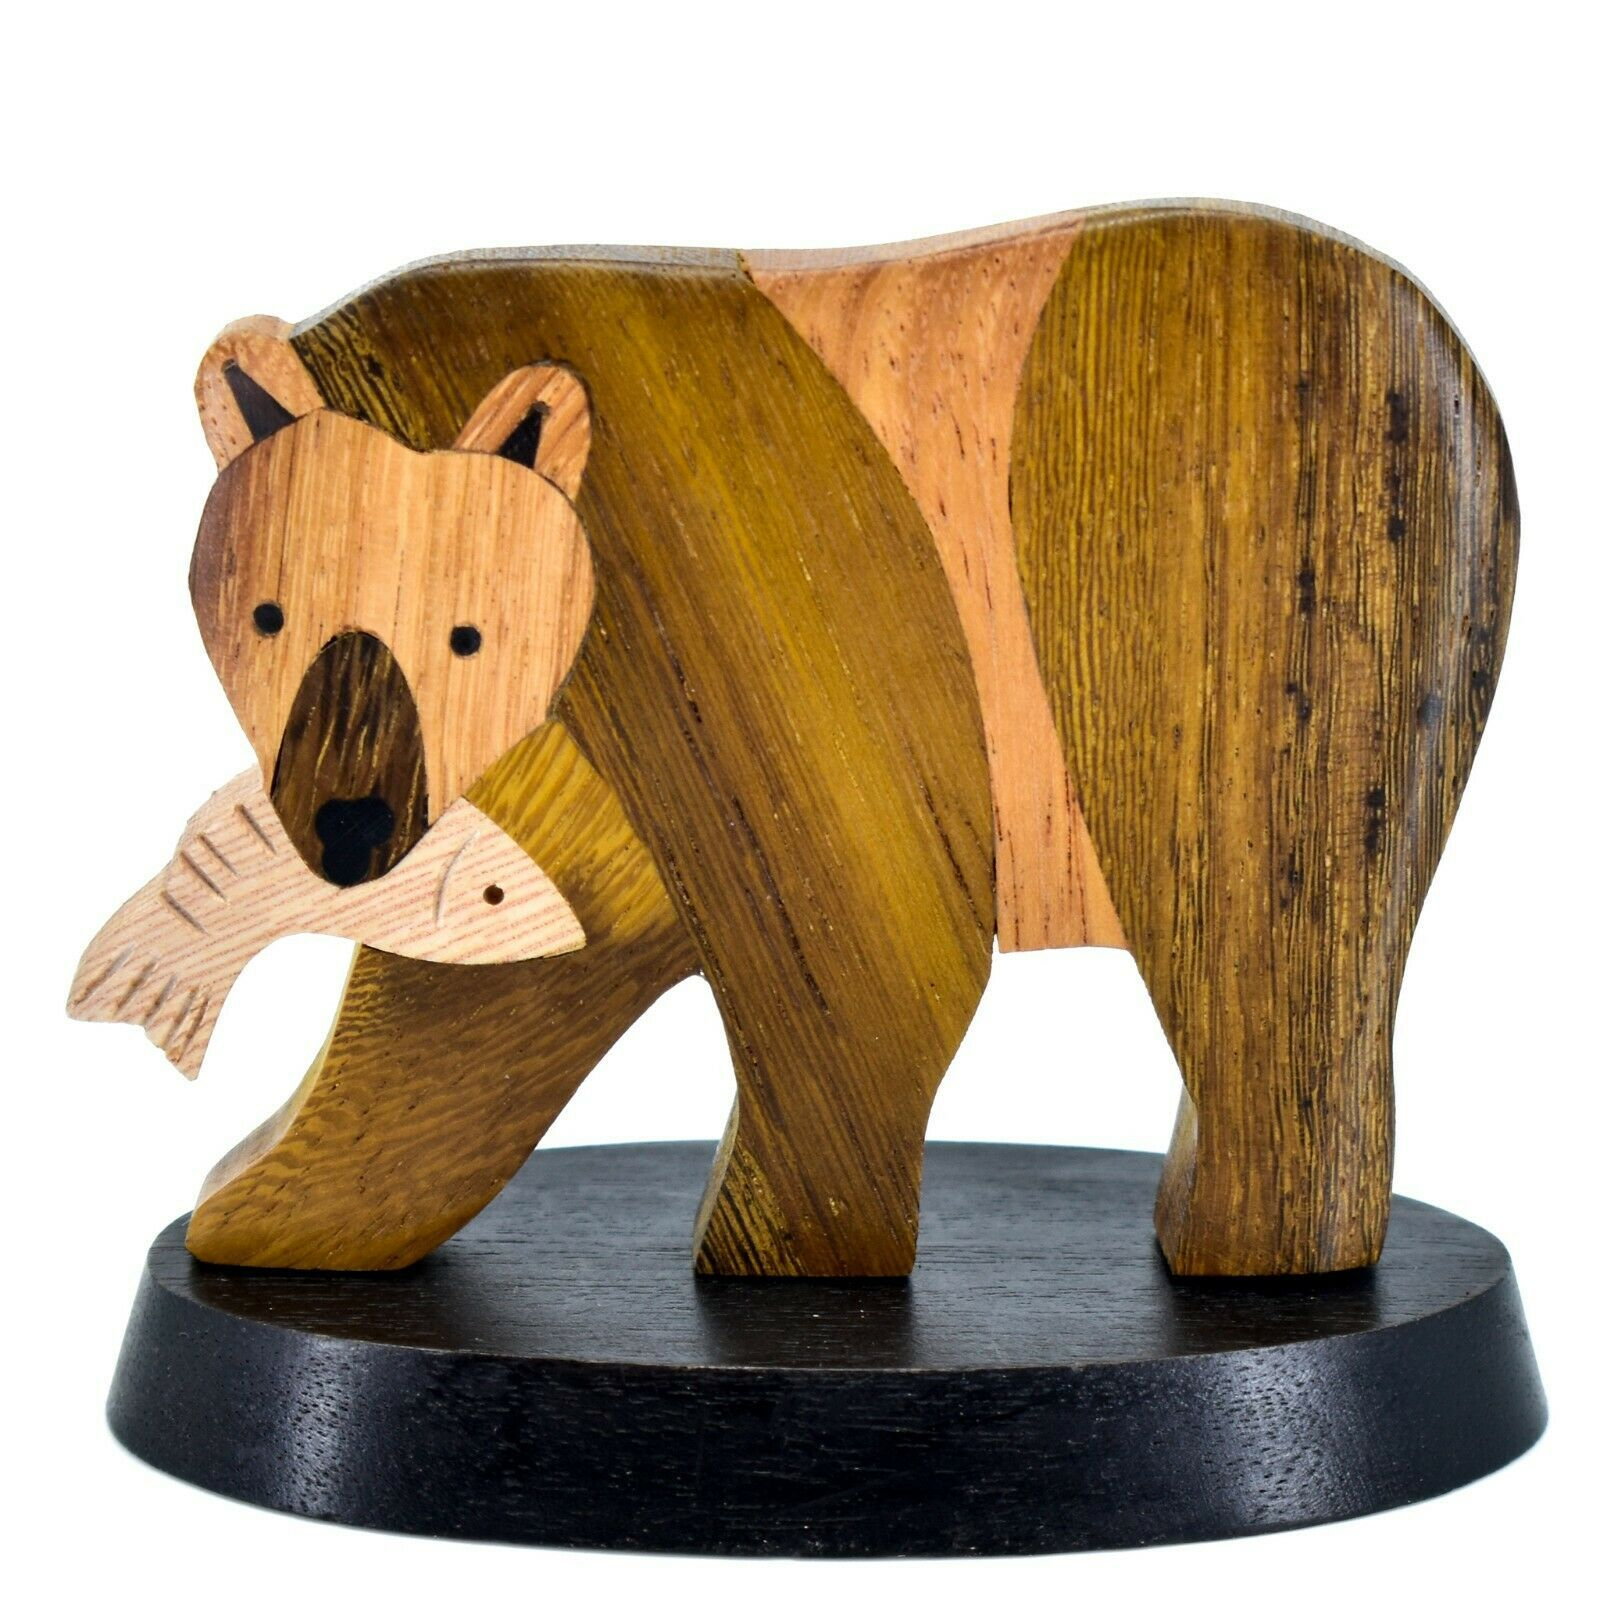 Northwoods Handmade Wooden Parquetry Bear with Fish Sculpture Figurine